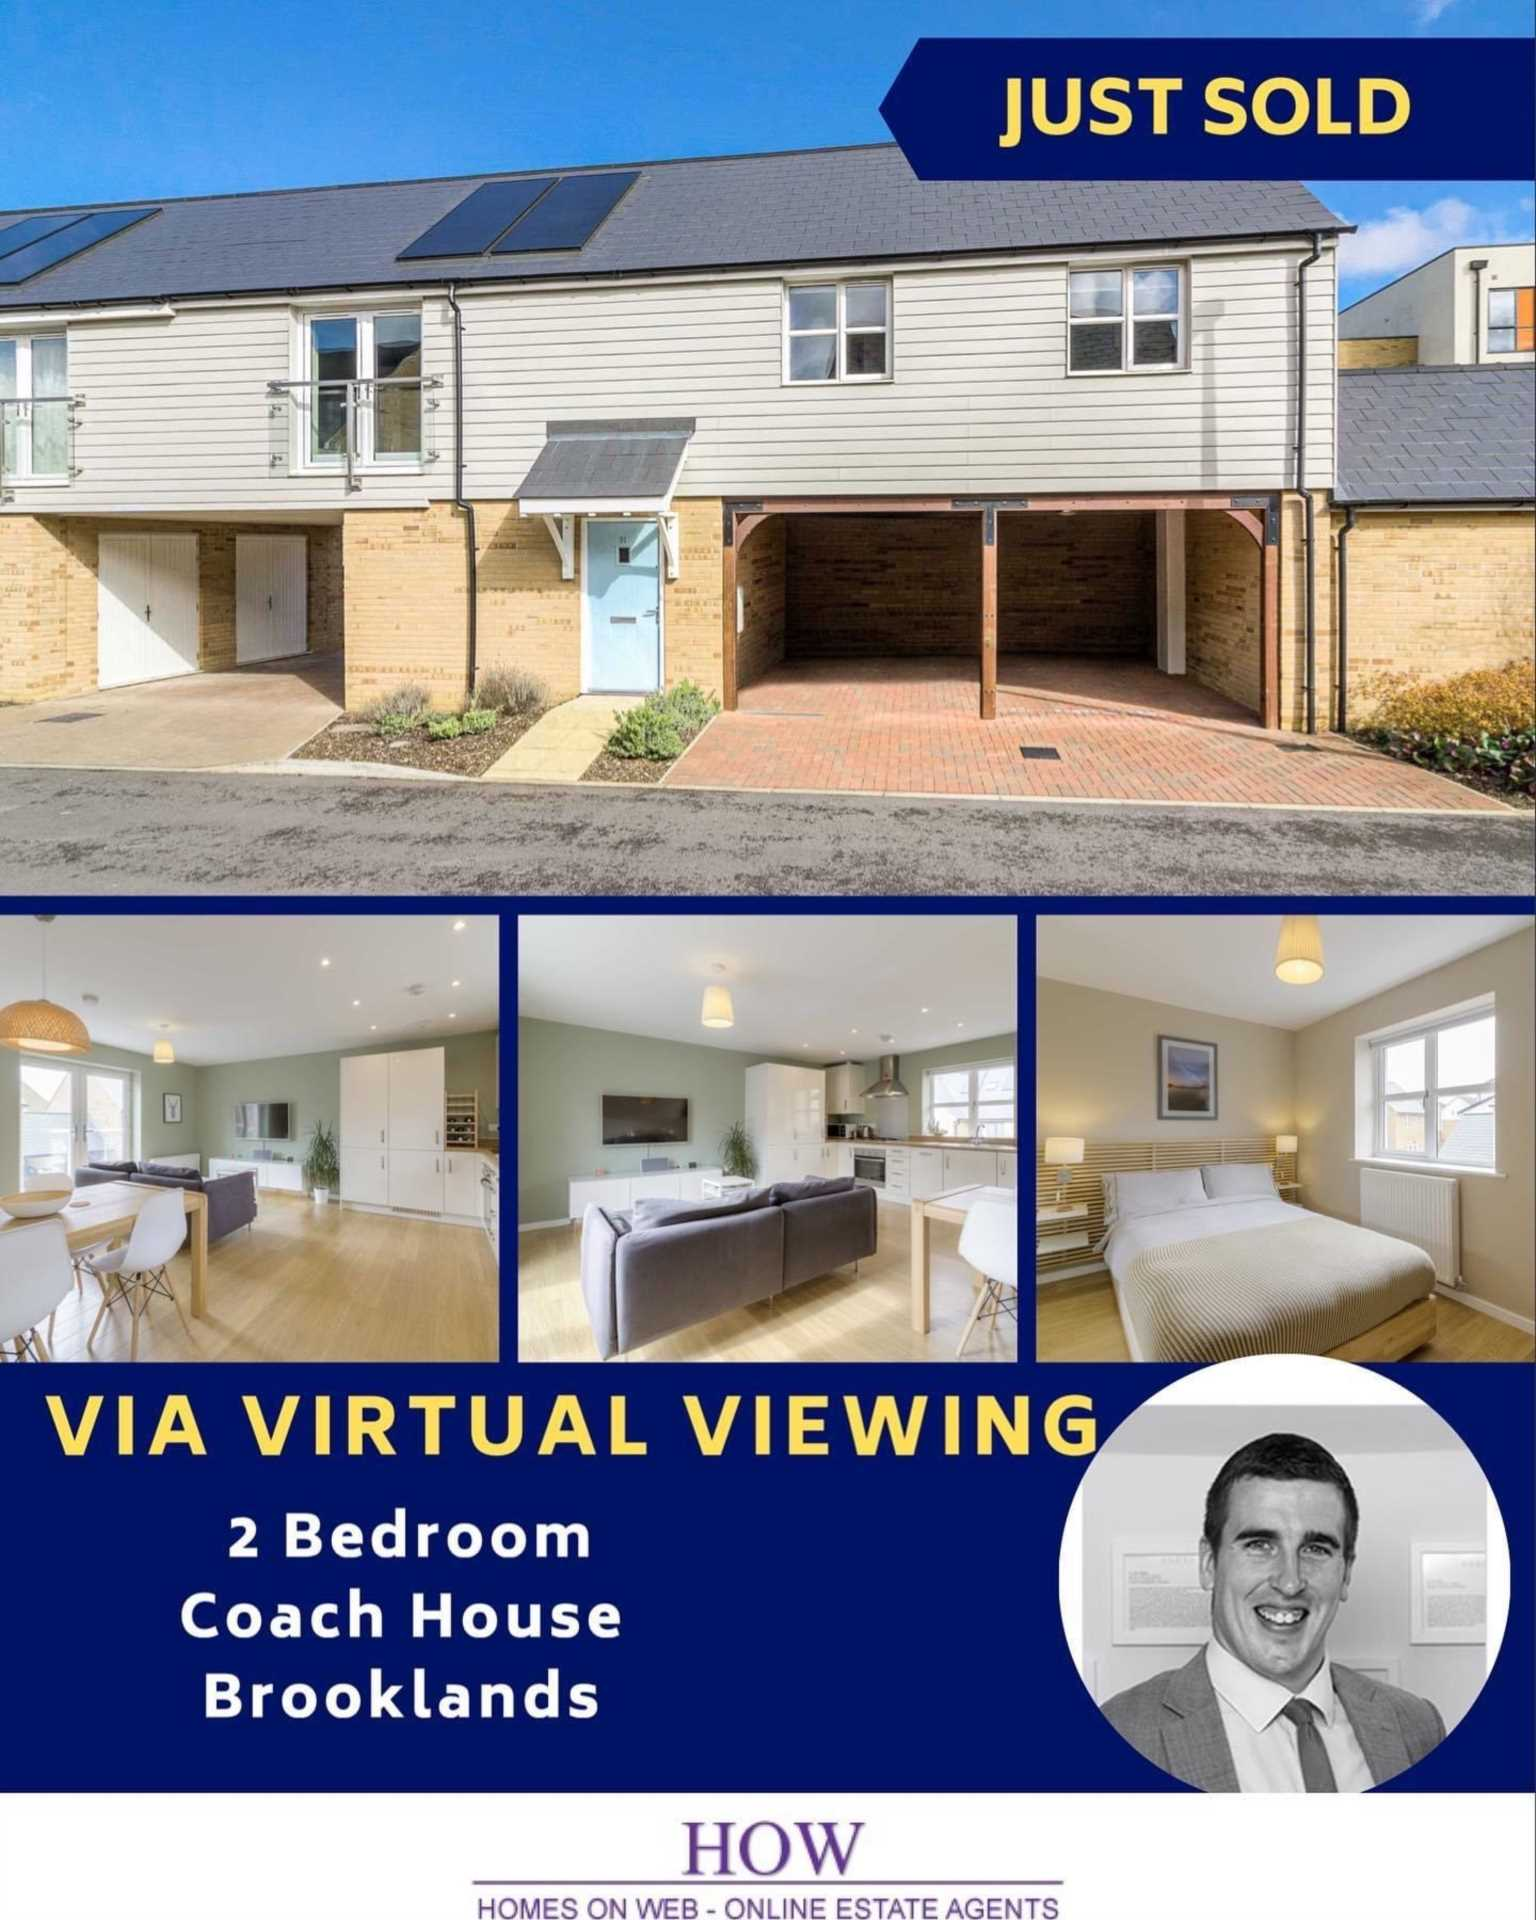 JUST SOLD STC VIA VIRTUAL VIEWING!!